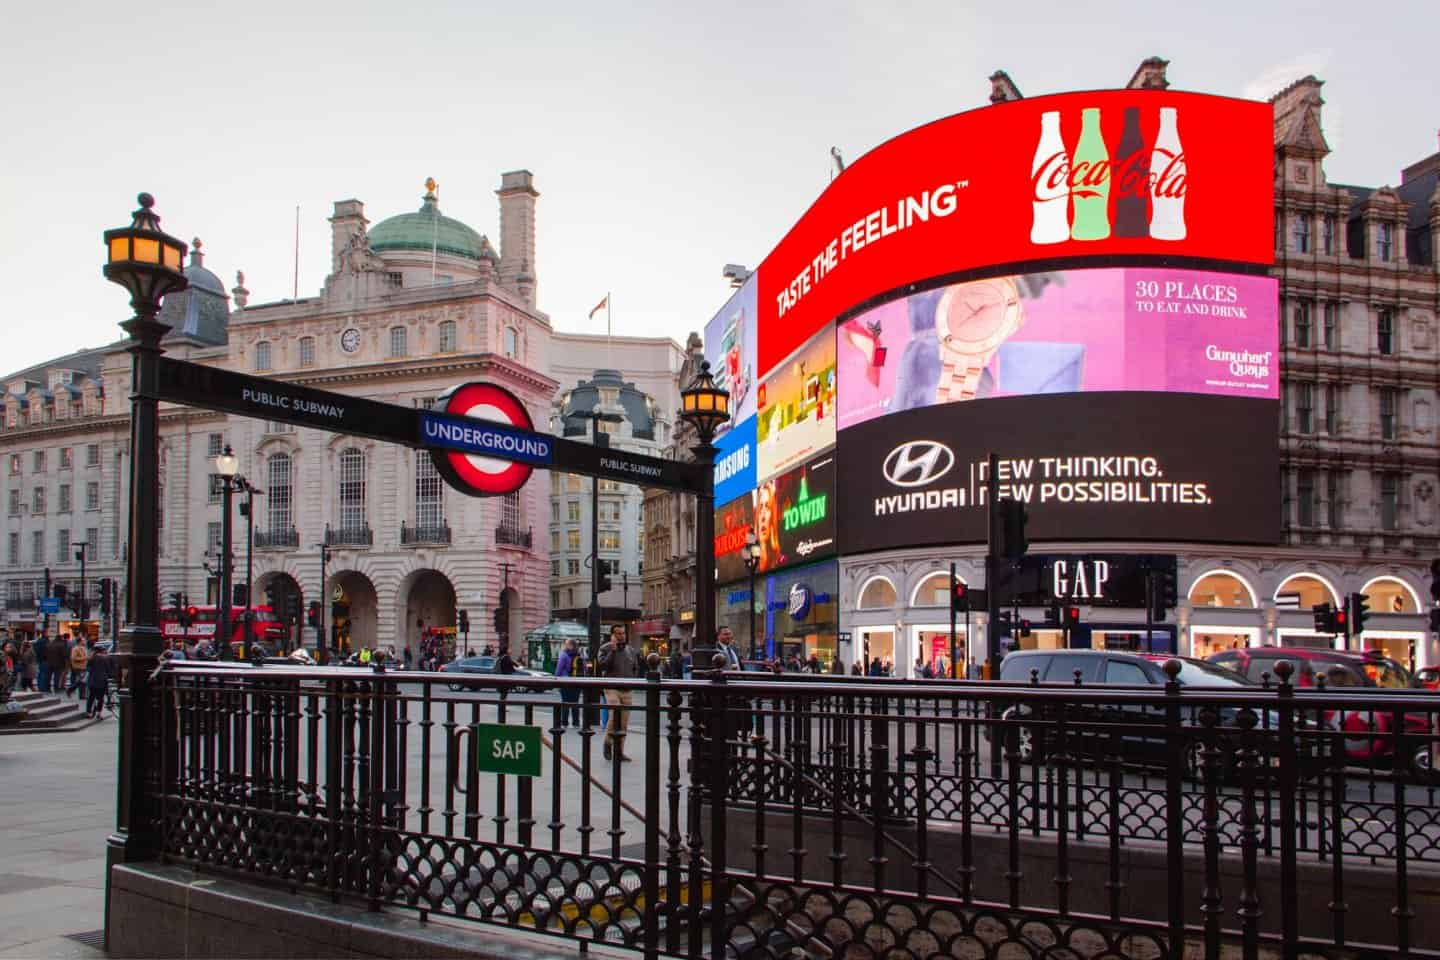 Piccadilly Circus should be on everyone's London bucket list